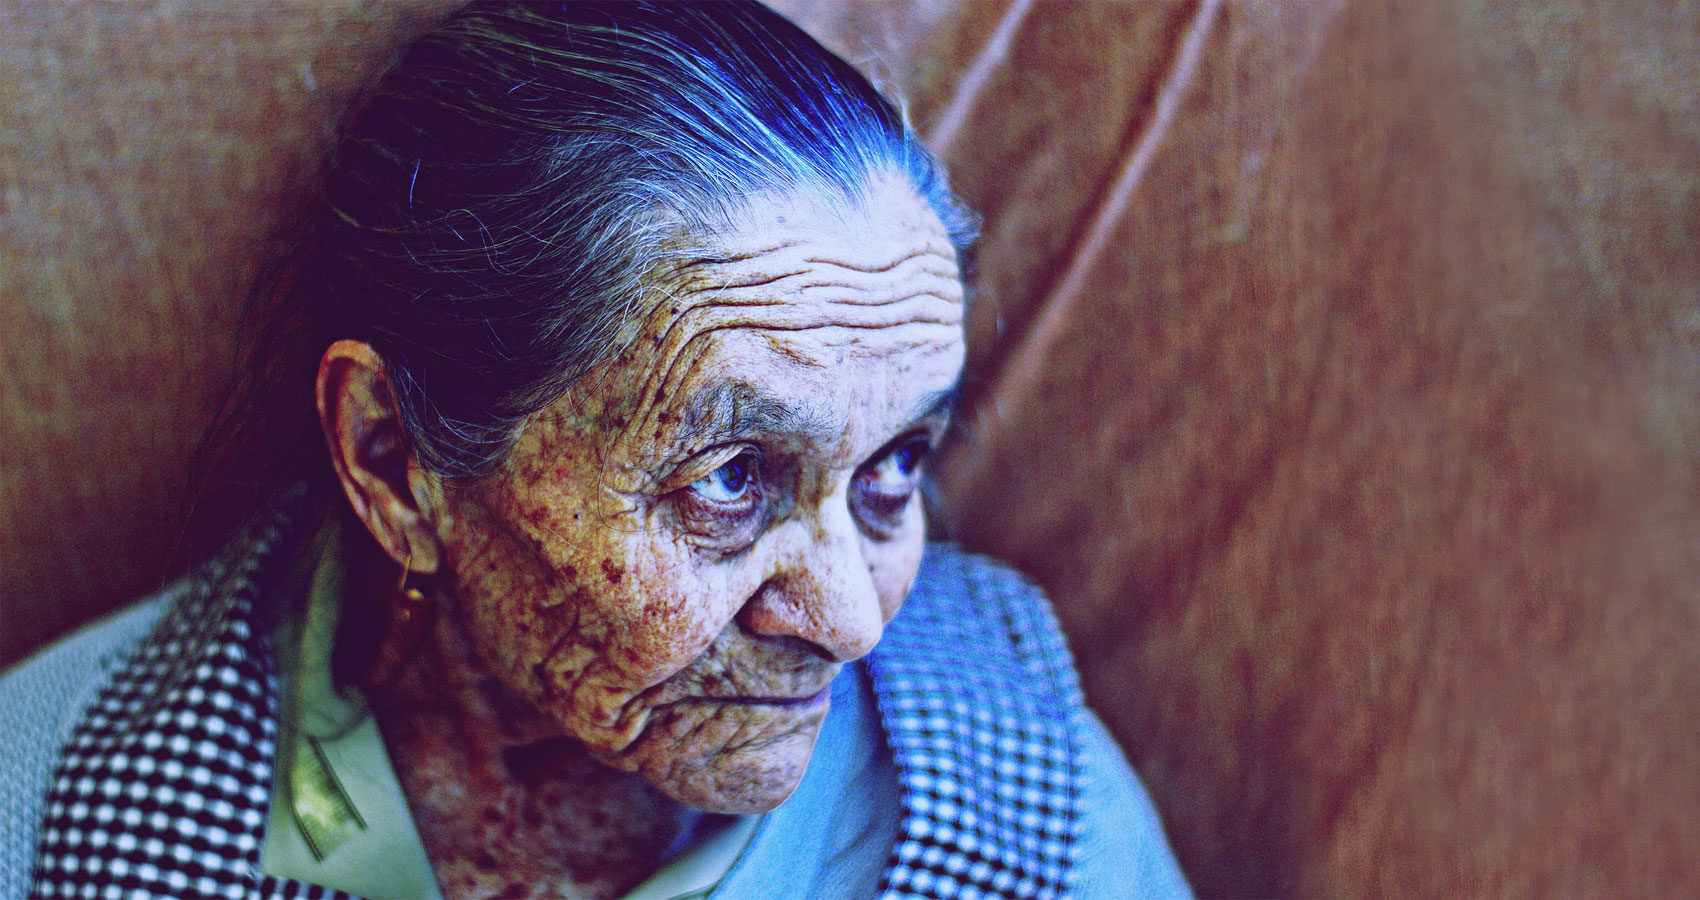 Once in a while you visit: a memory of my great-grandmother, written by Arusha Topazzini at Spillwords.com